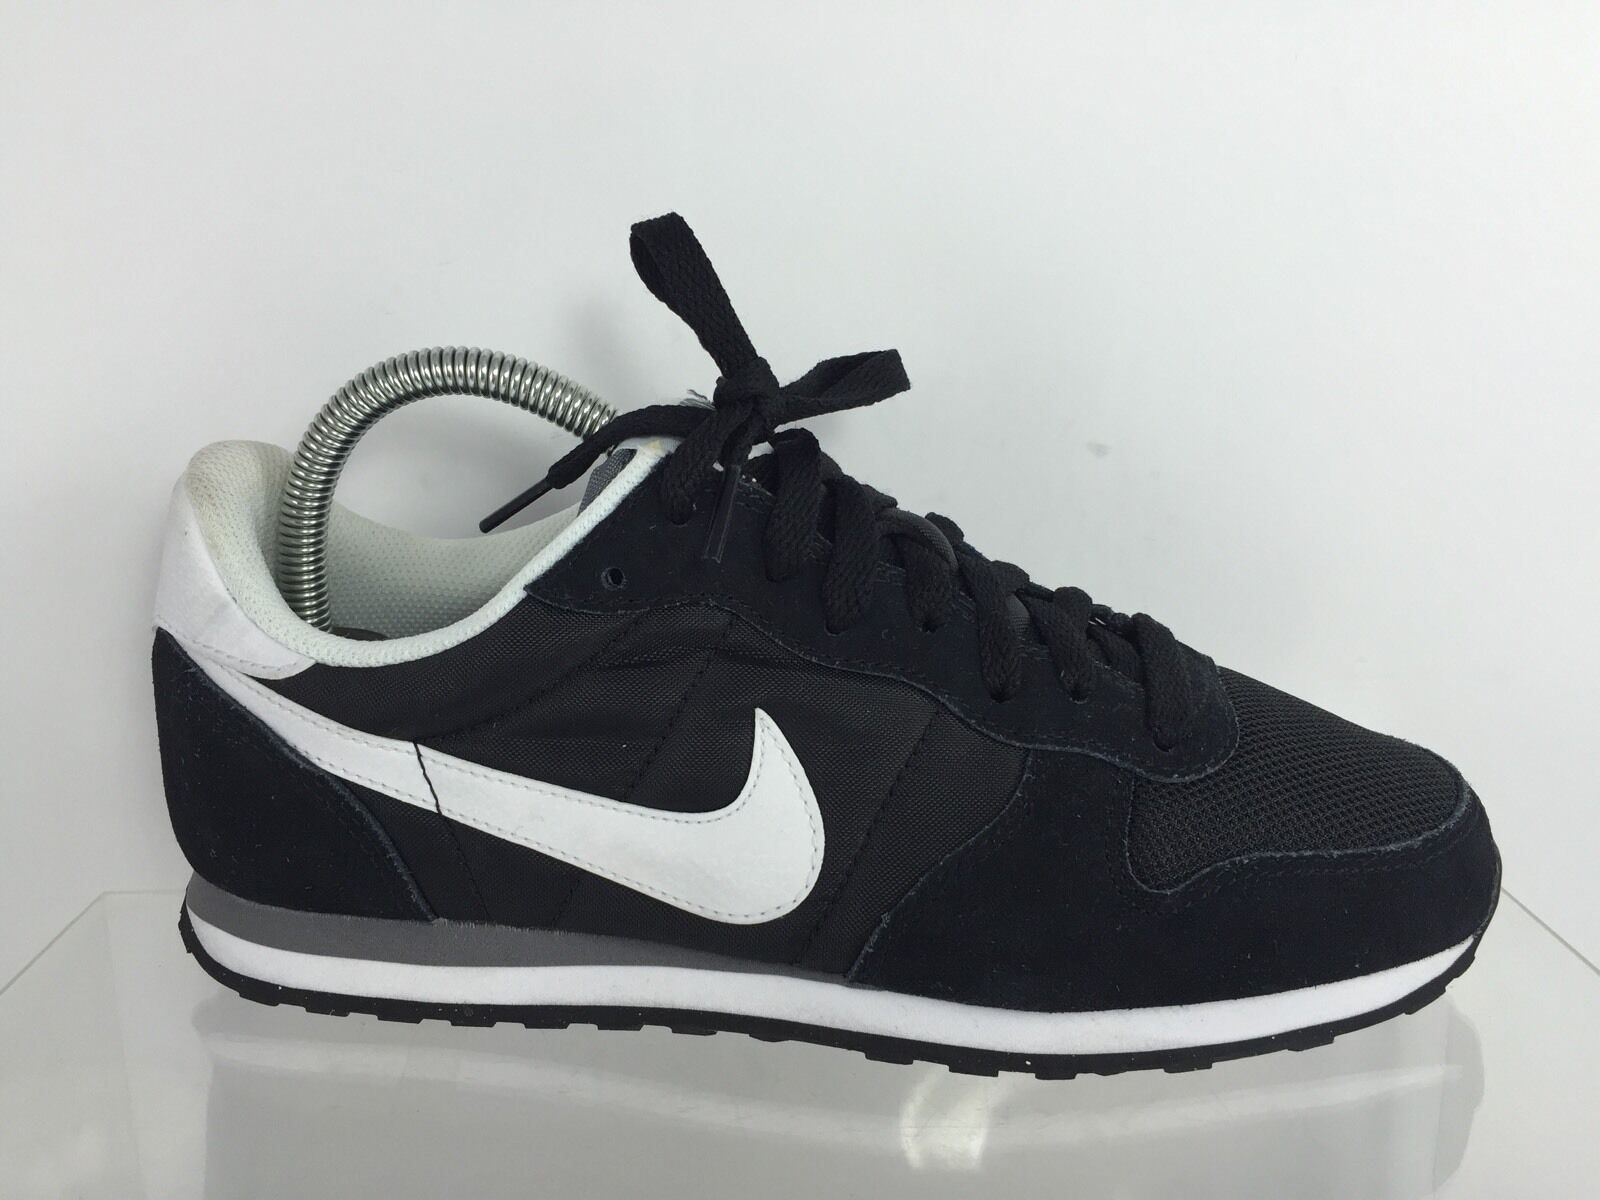 Nike Mens Black Shoes 7